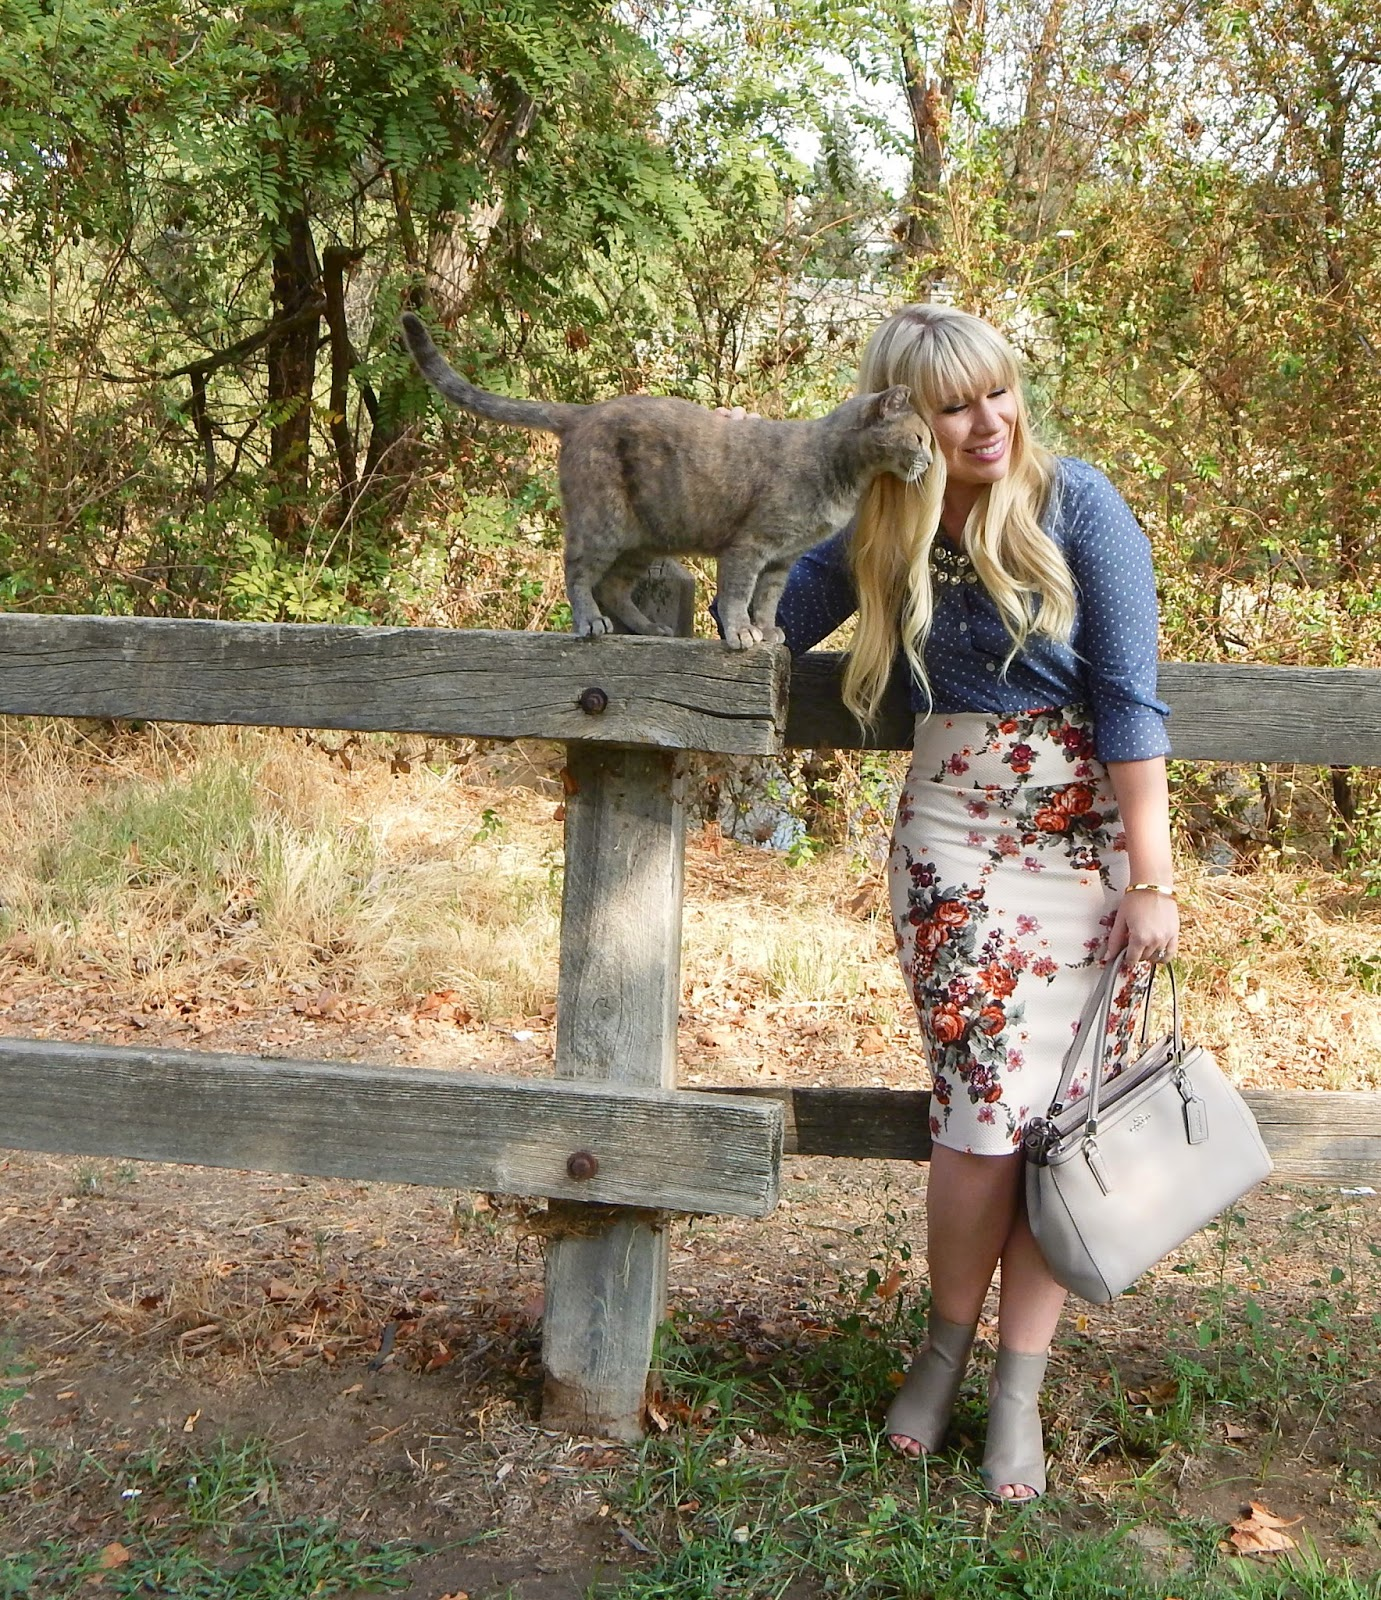 Feminine Fashion Blogger Elizabeth Hugen of Lizzie in Lace shares the truth about why she quit selling Lularoe